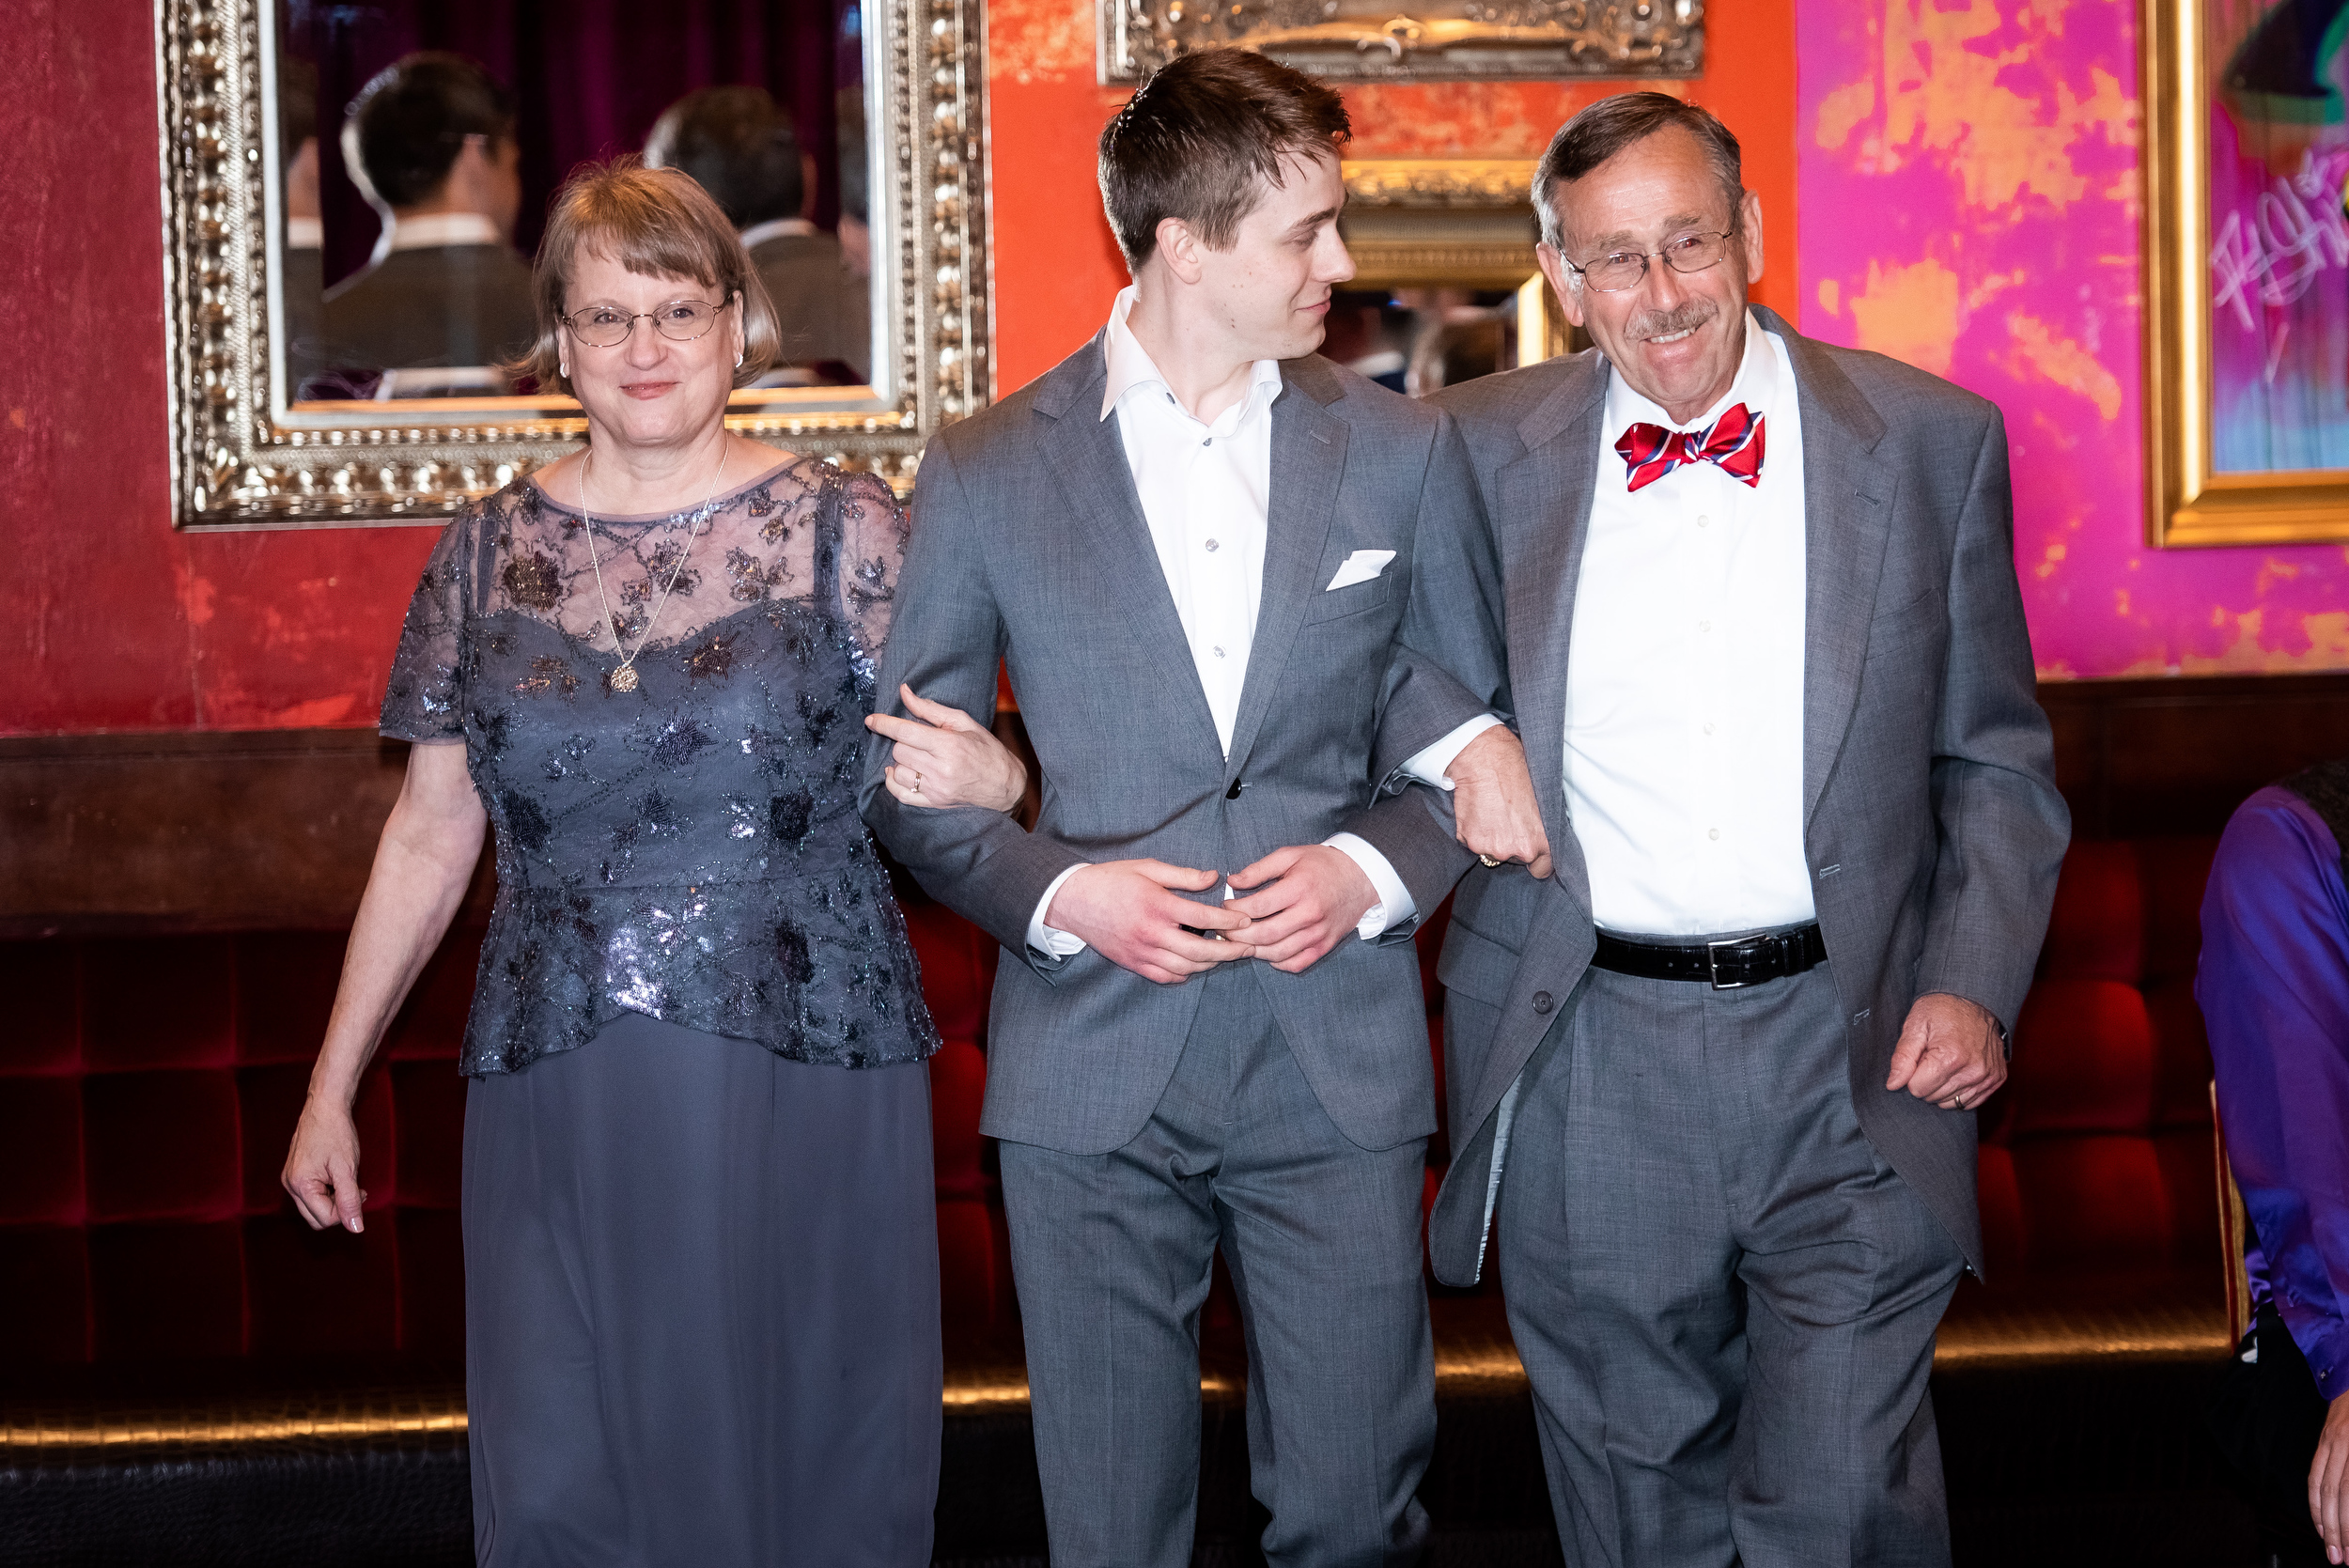 Groom walking into wedding ceremony with parents: Carnivale Chicago wedding captured by J Brown Photography